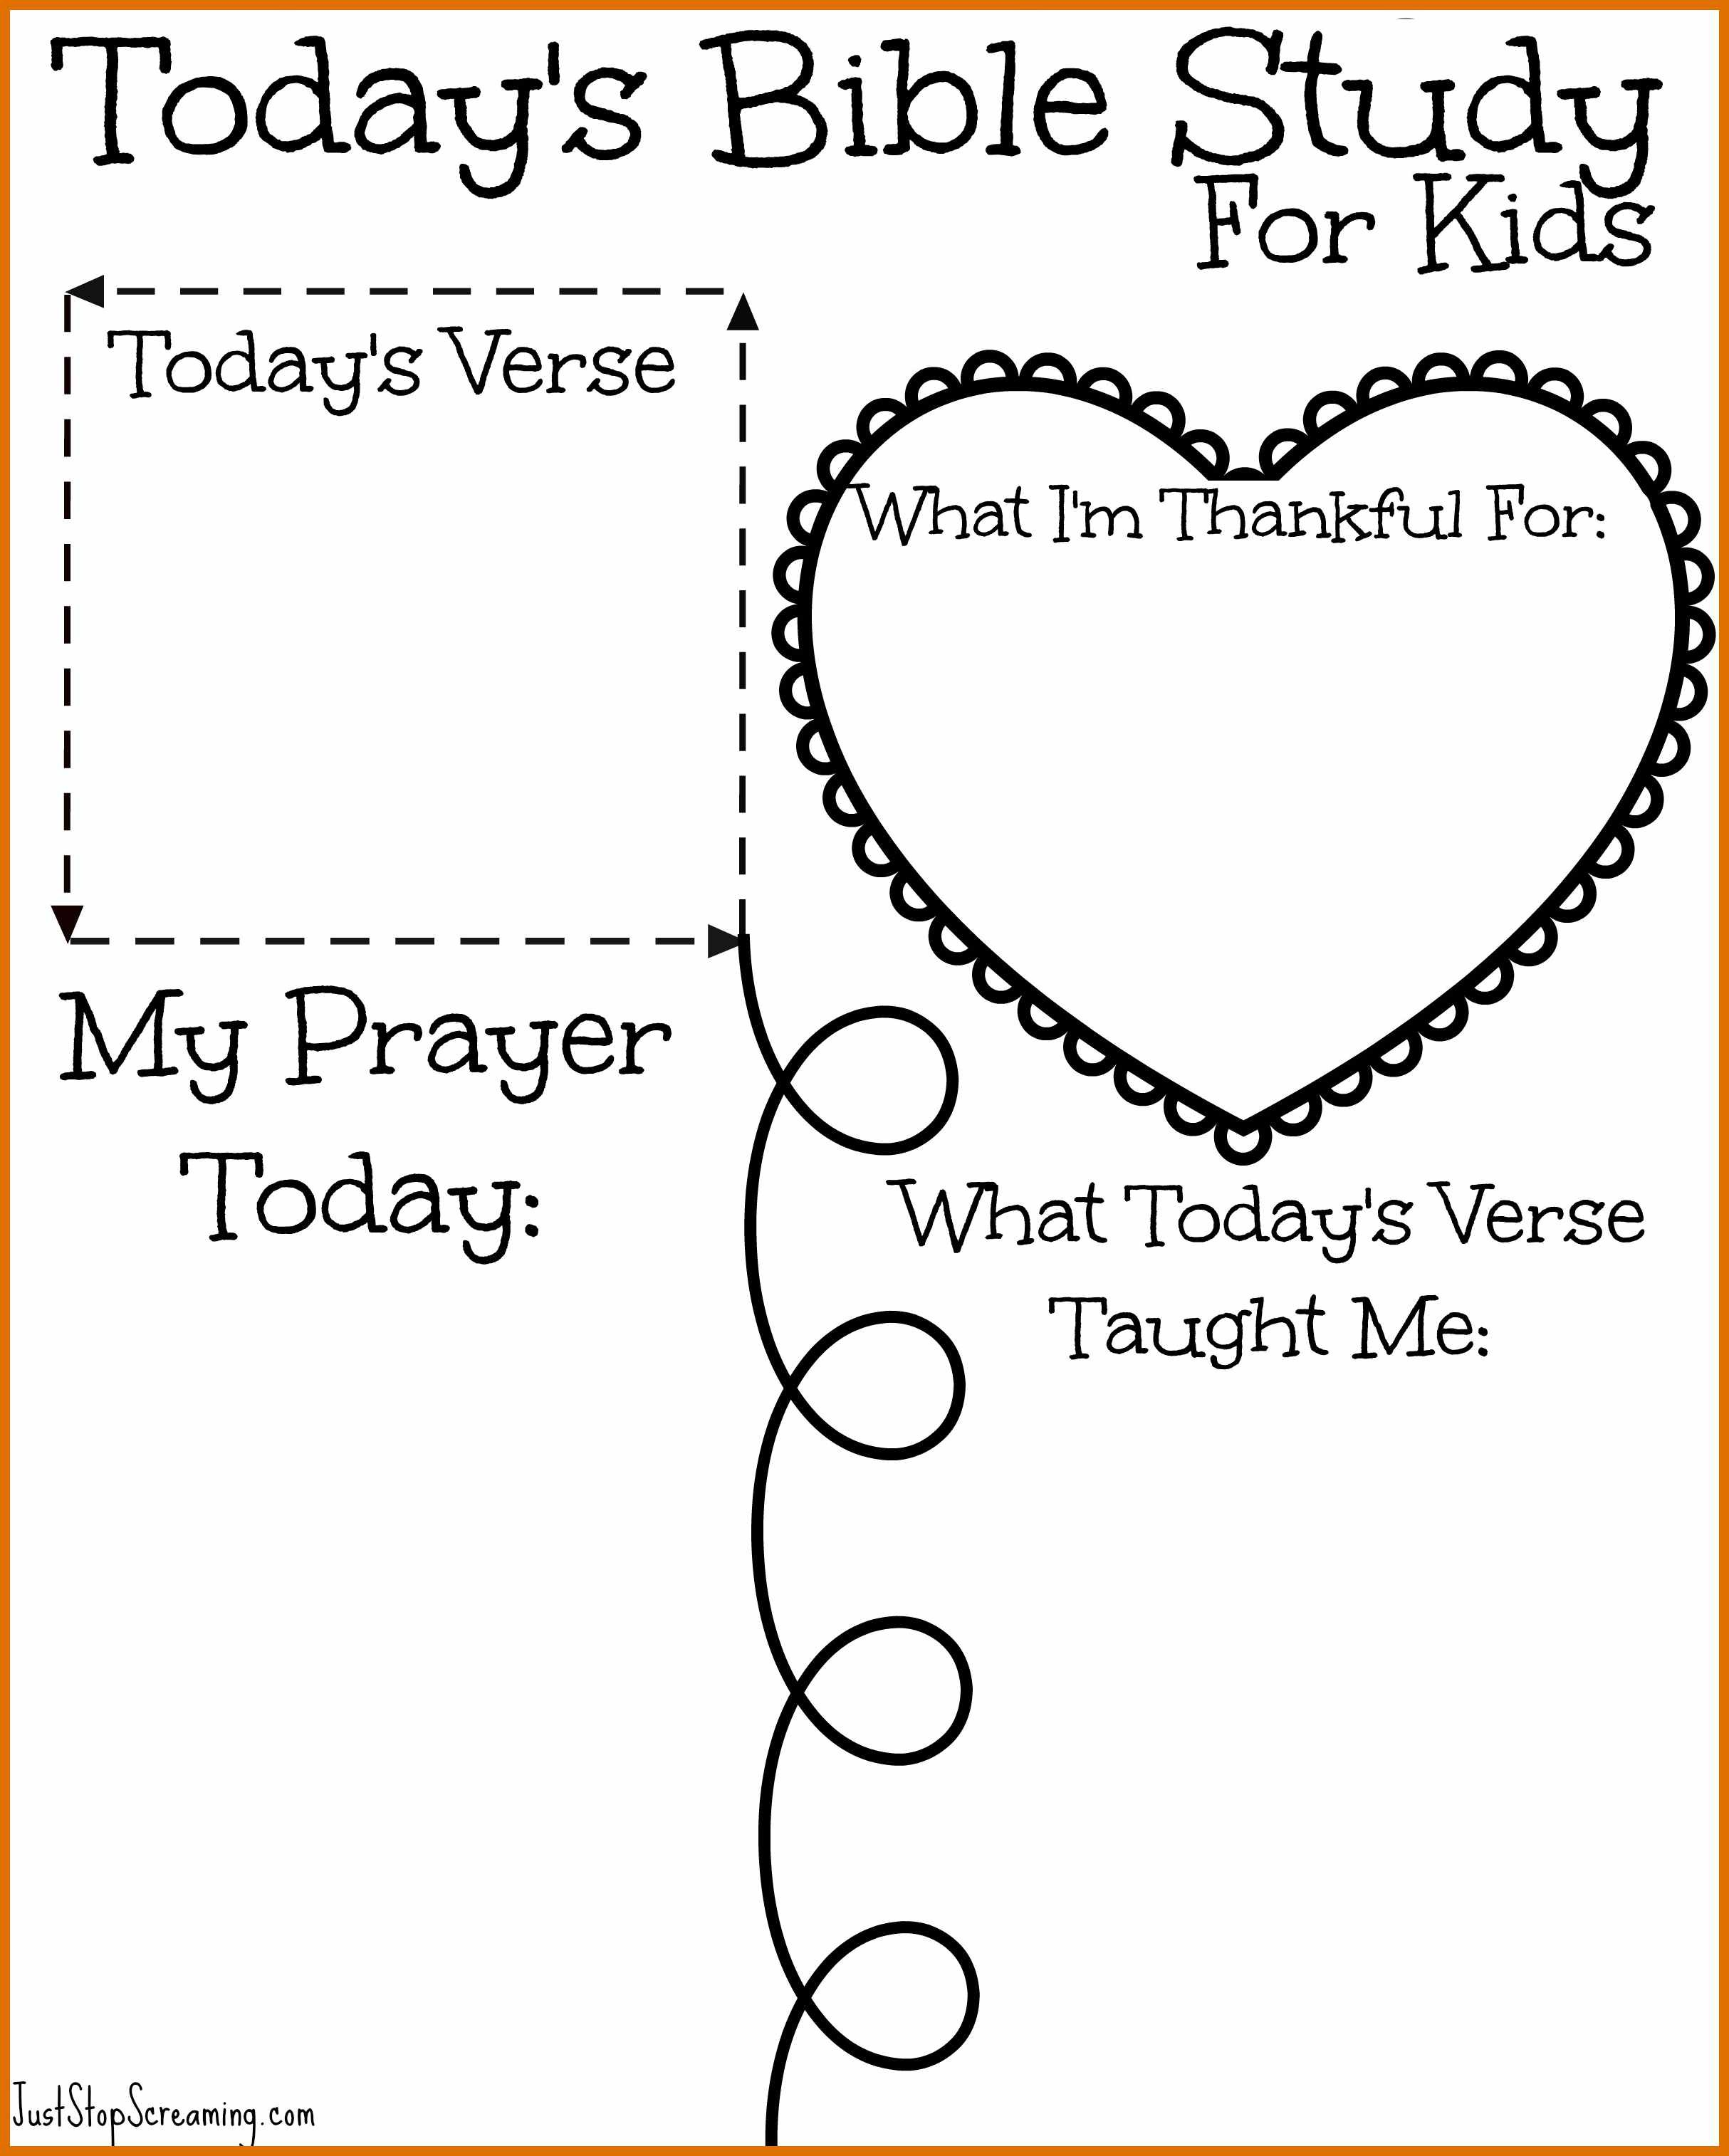 8-9 Free Printable Bible Study Worksheets | Sowtemplate - Free Printable Bible Lessons For Youth